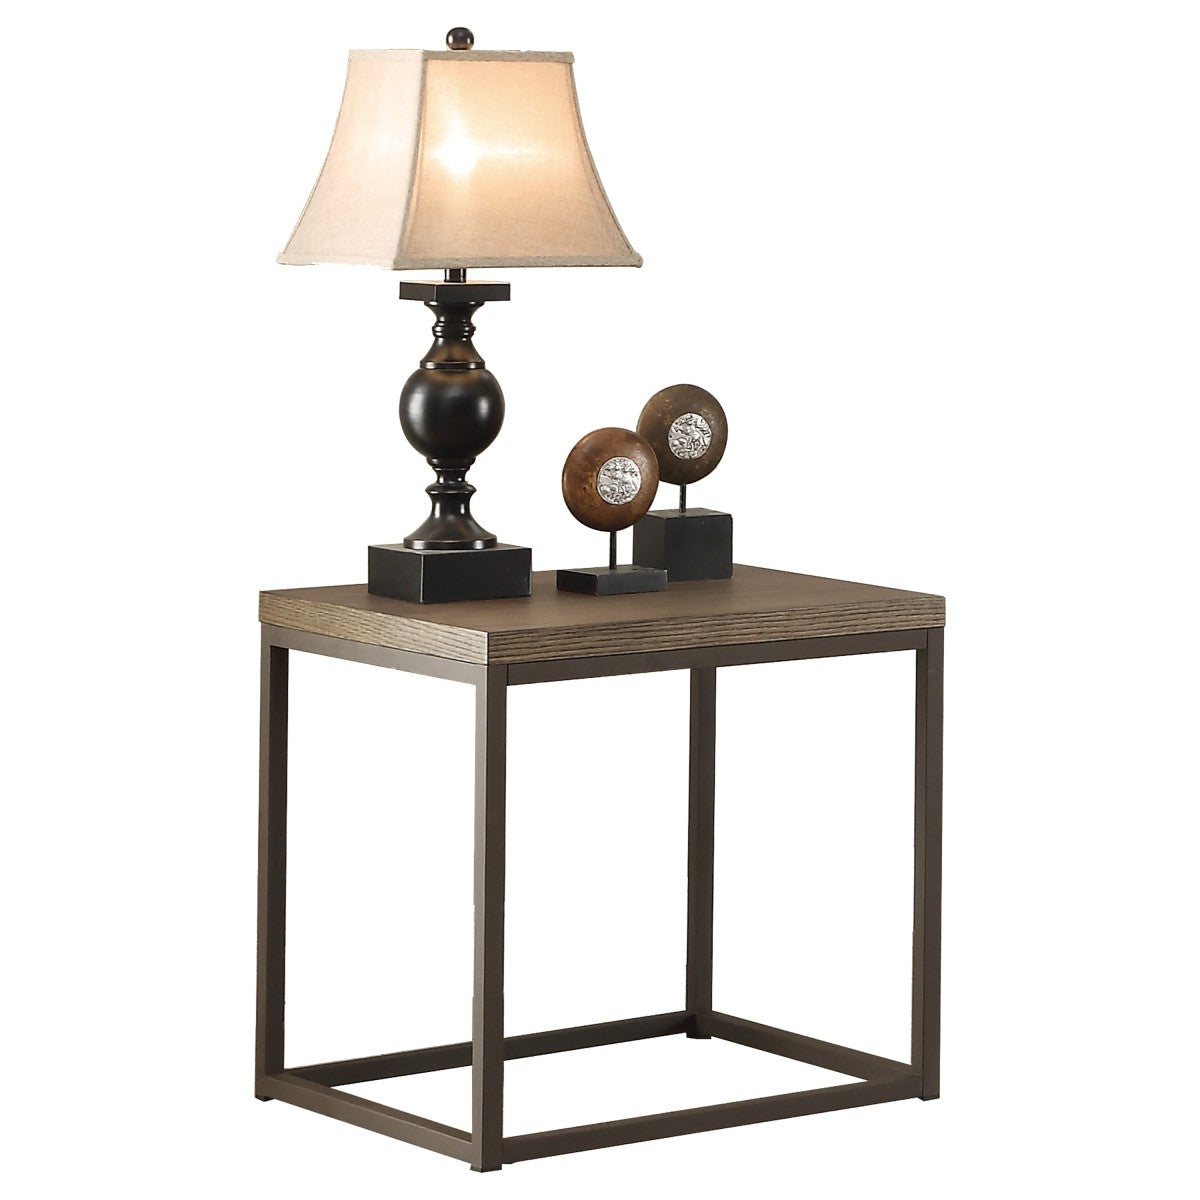 Homelegance Daria Gray Wood And Metal Finish End Table